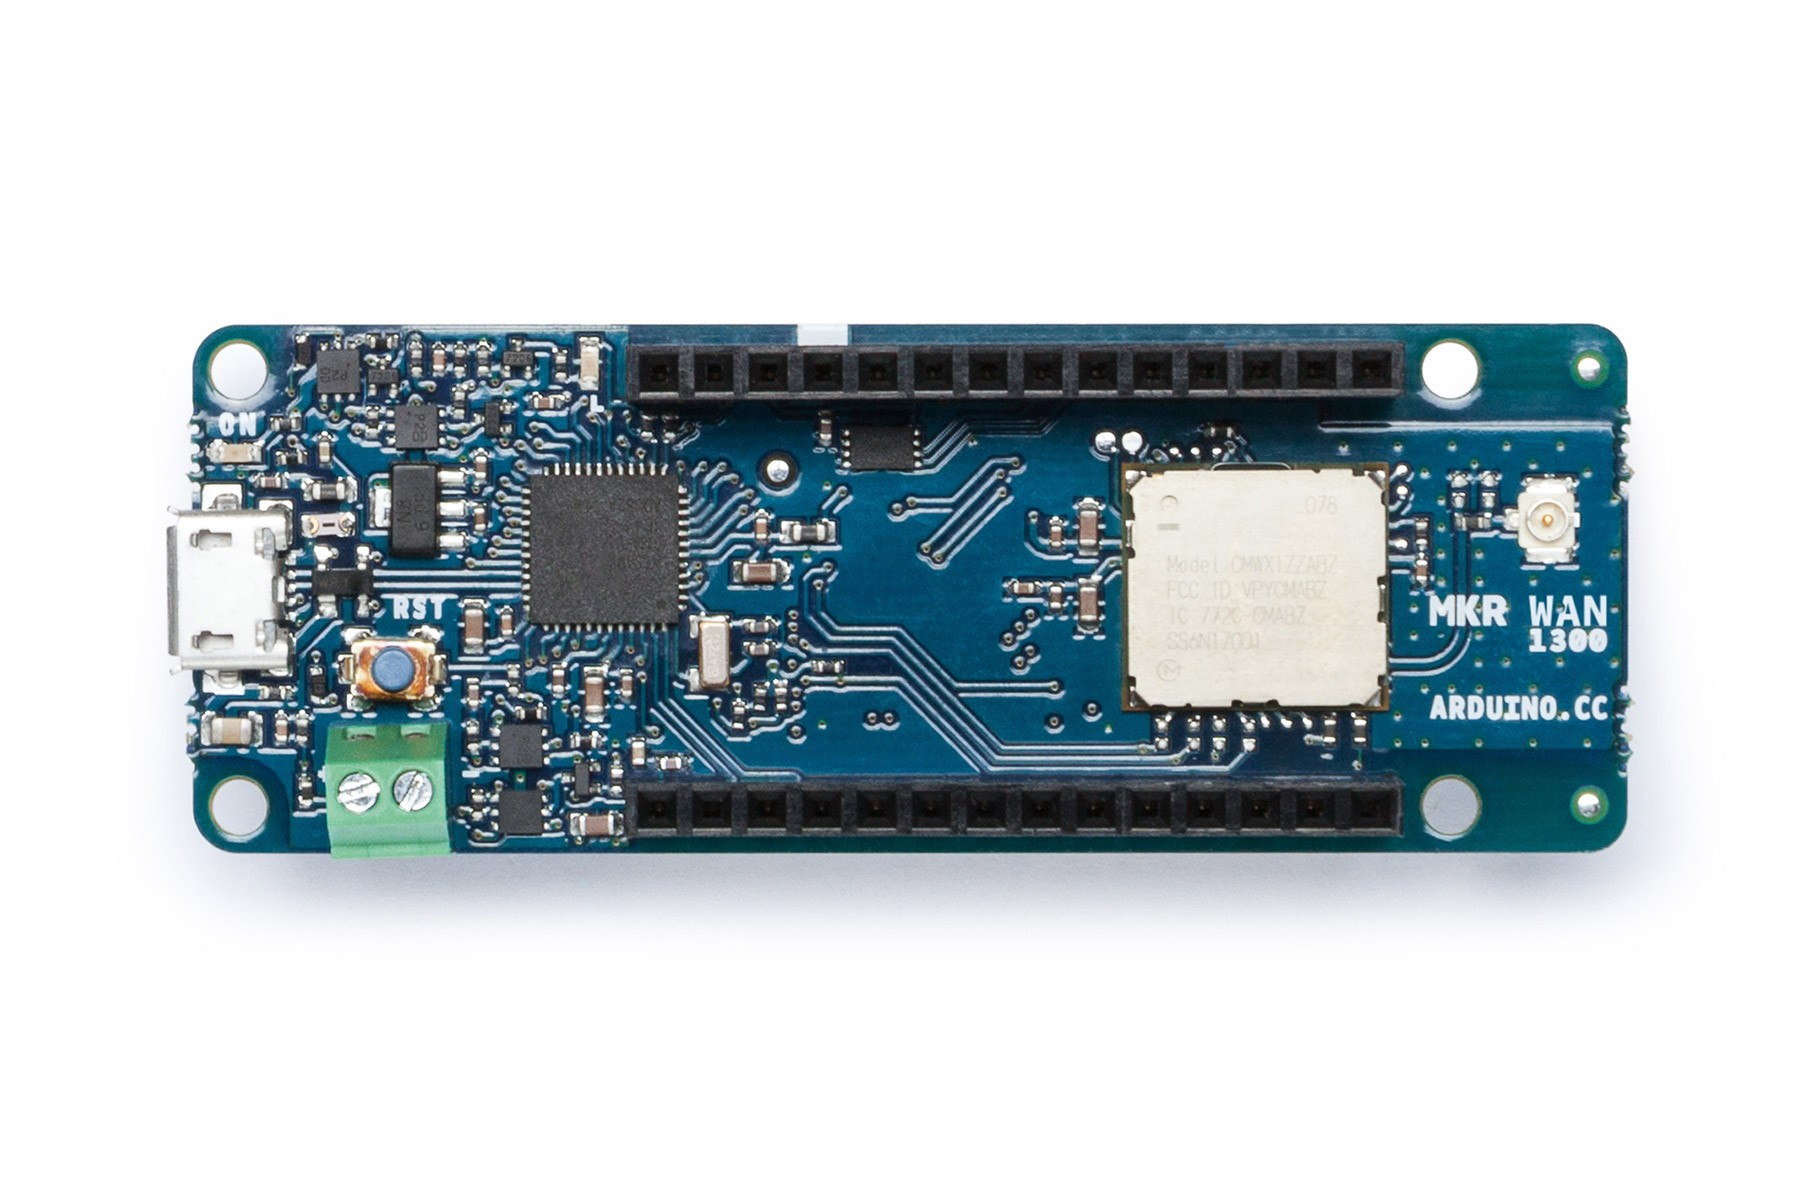 Arduino Blog » Introducing the Arduino MKR WAN 1300 and MKR